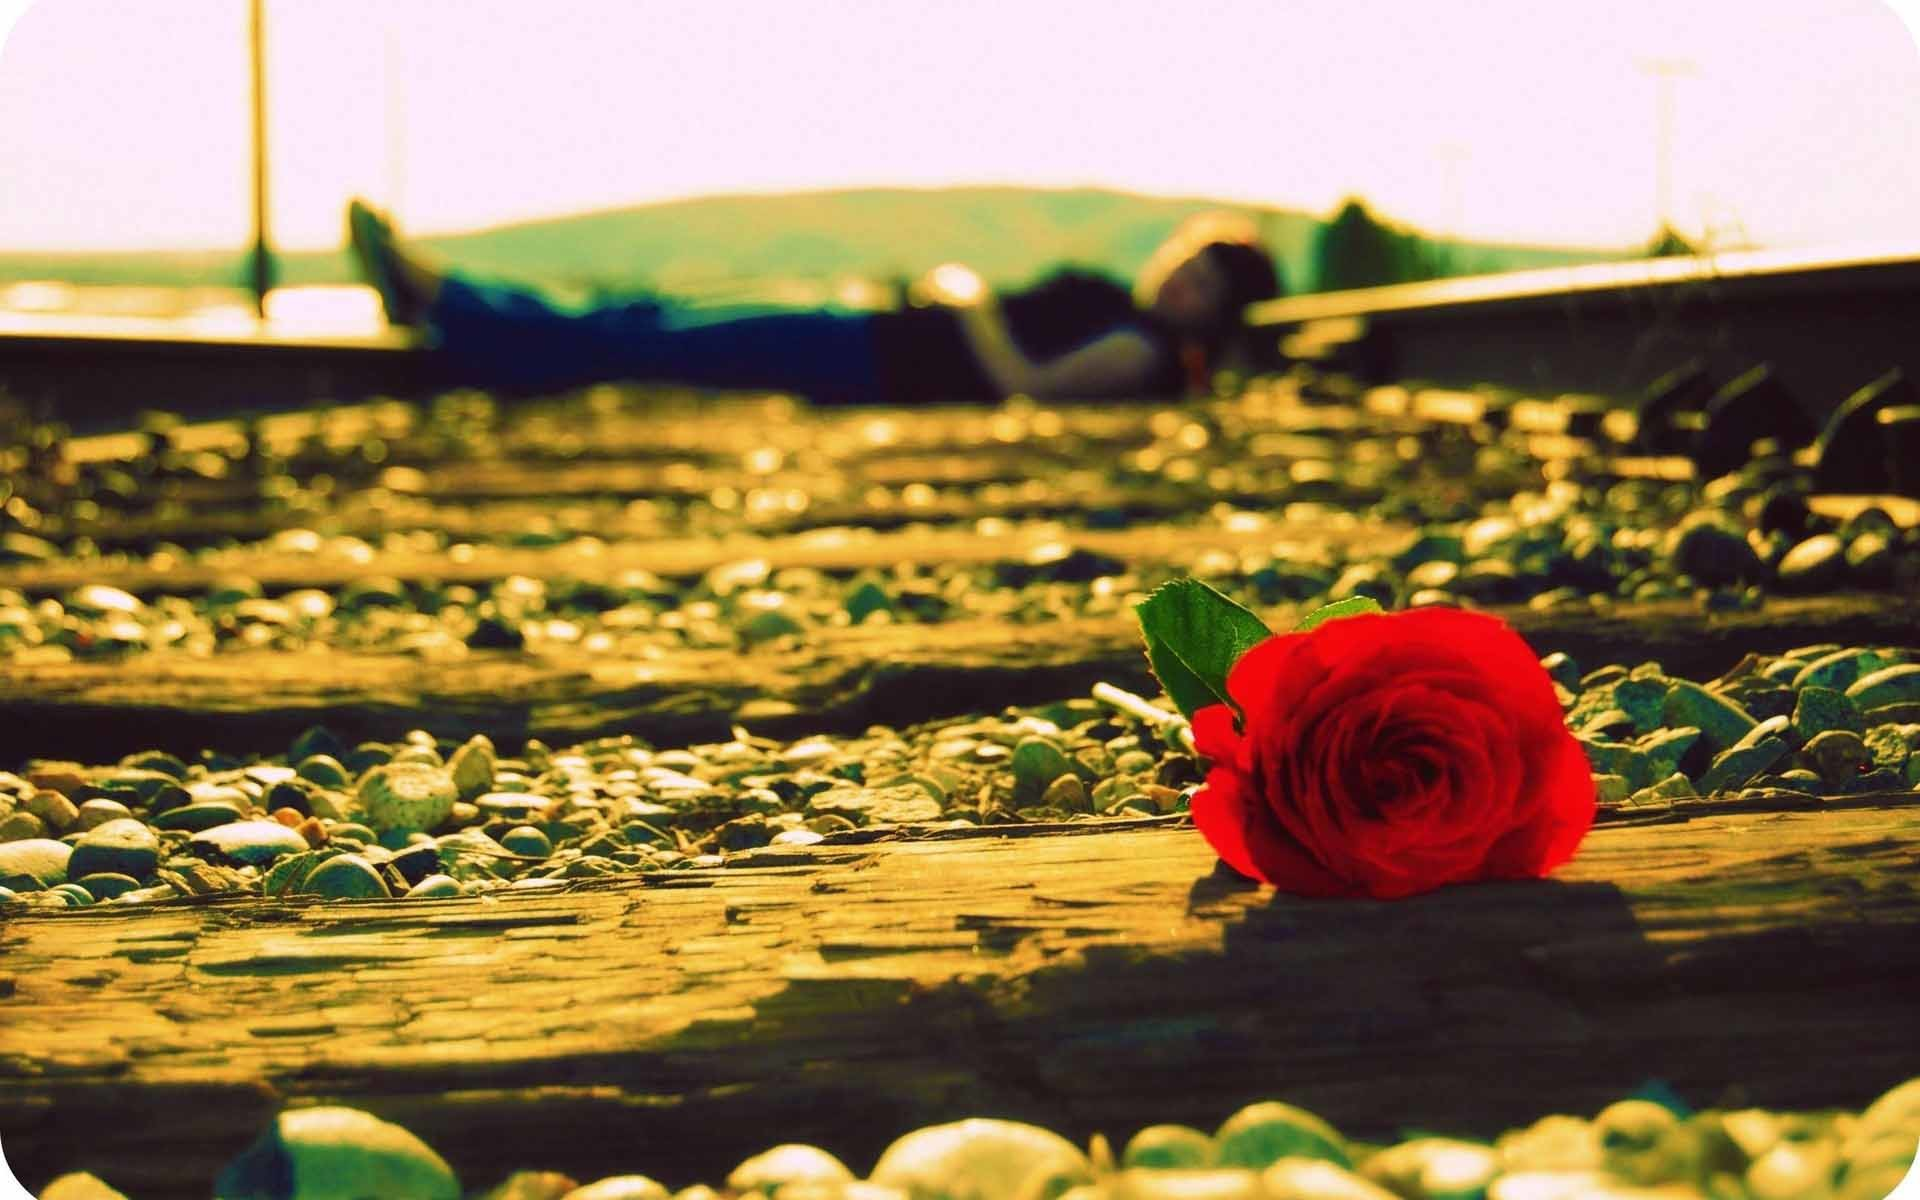 Alone girl on train track with rose love image